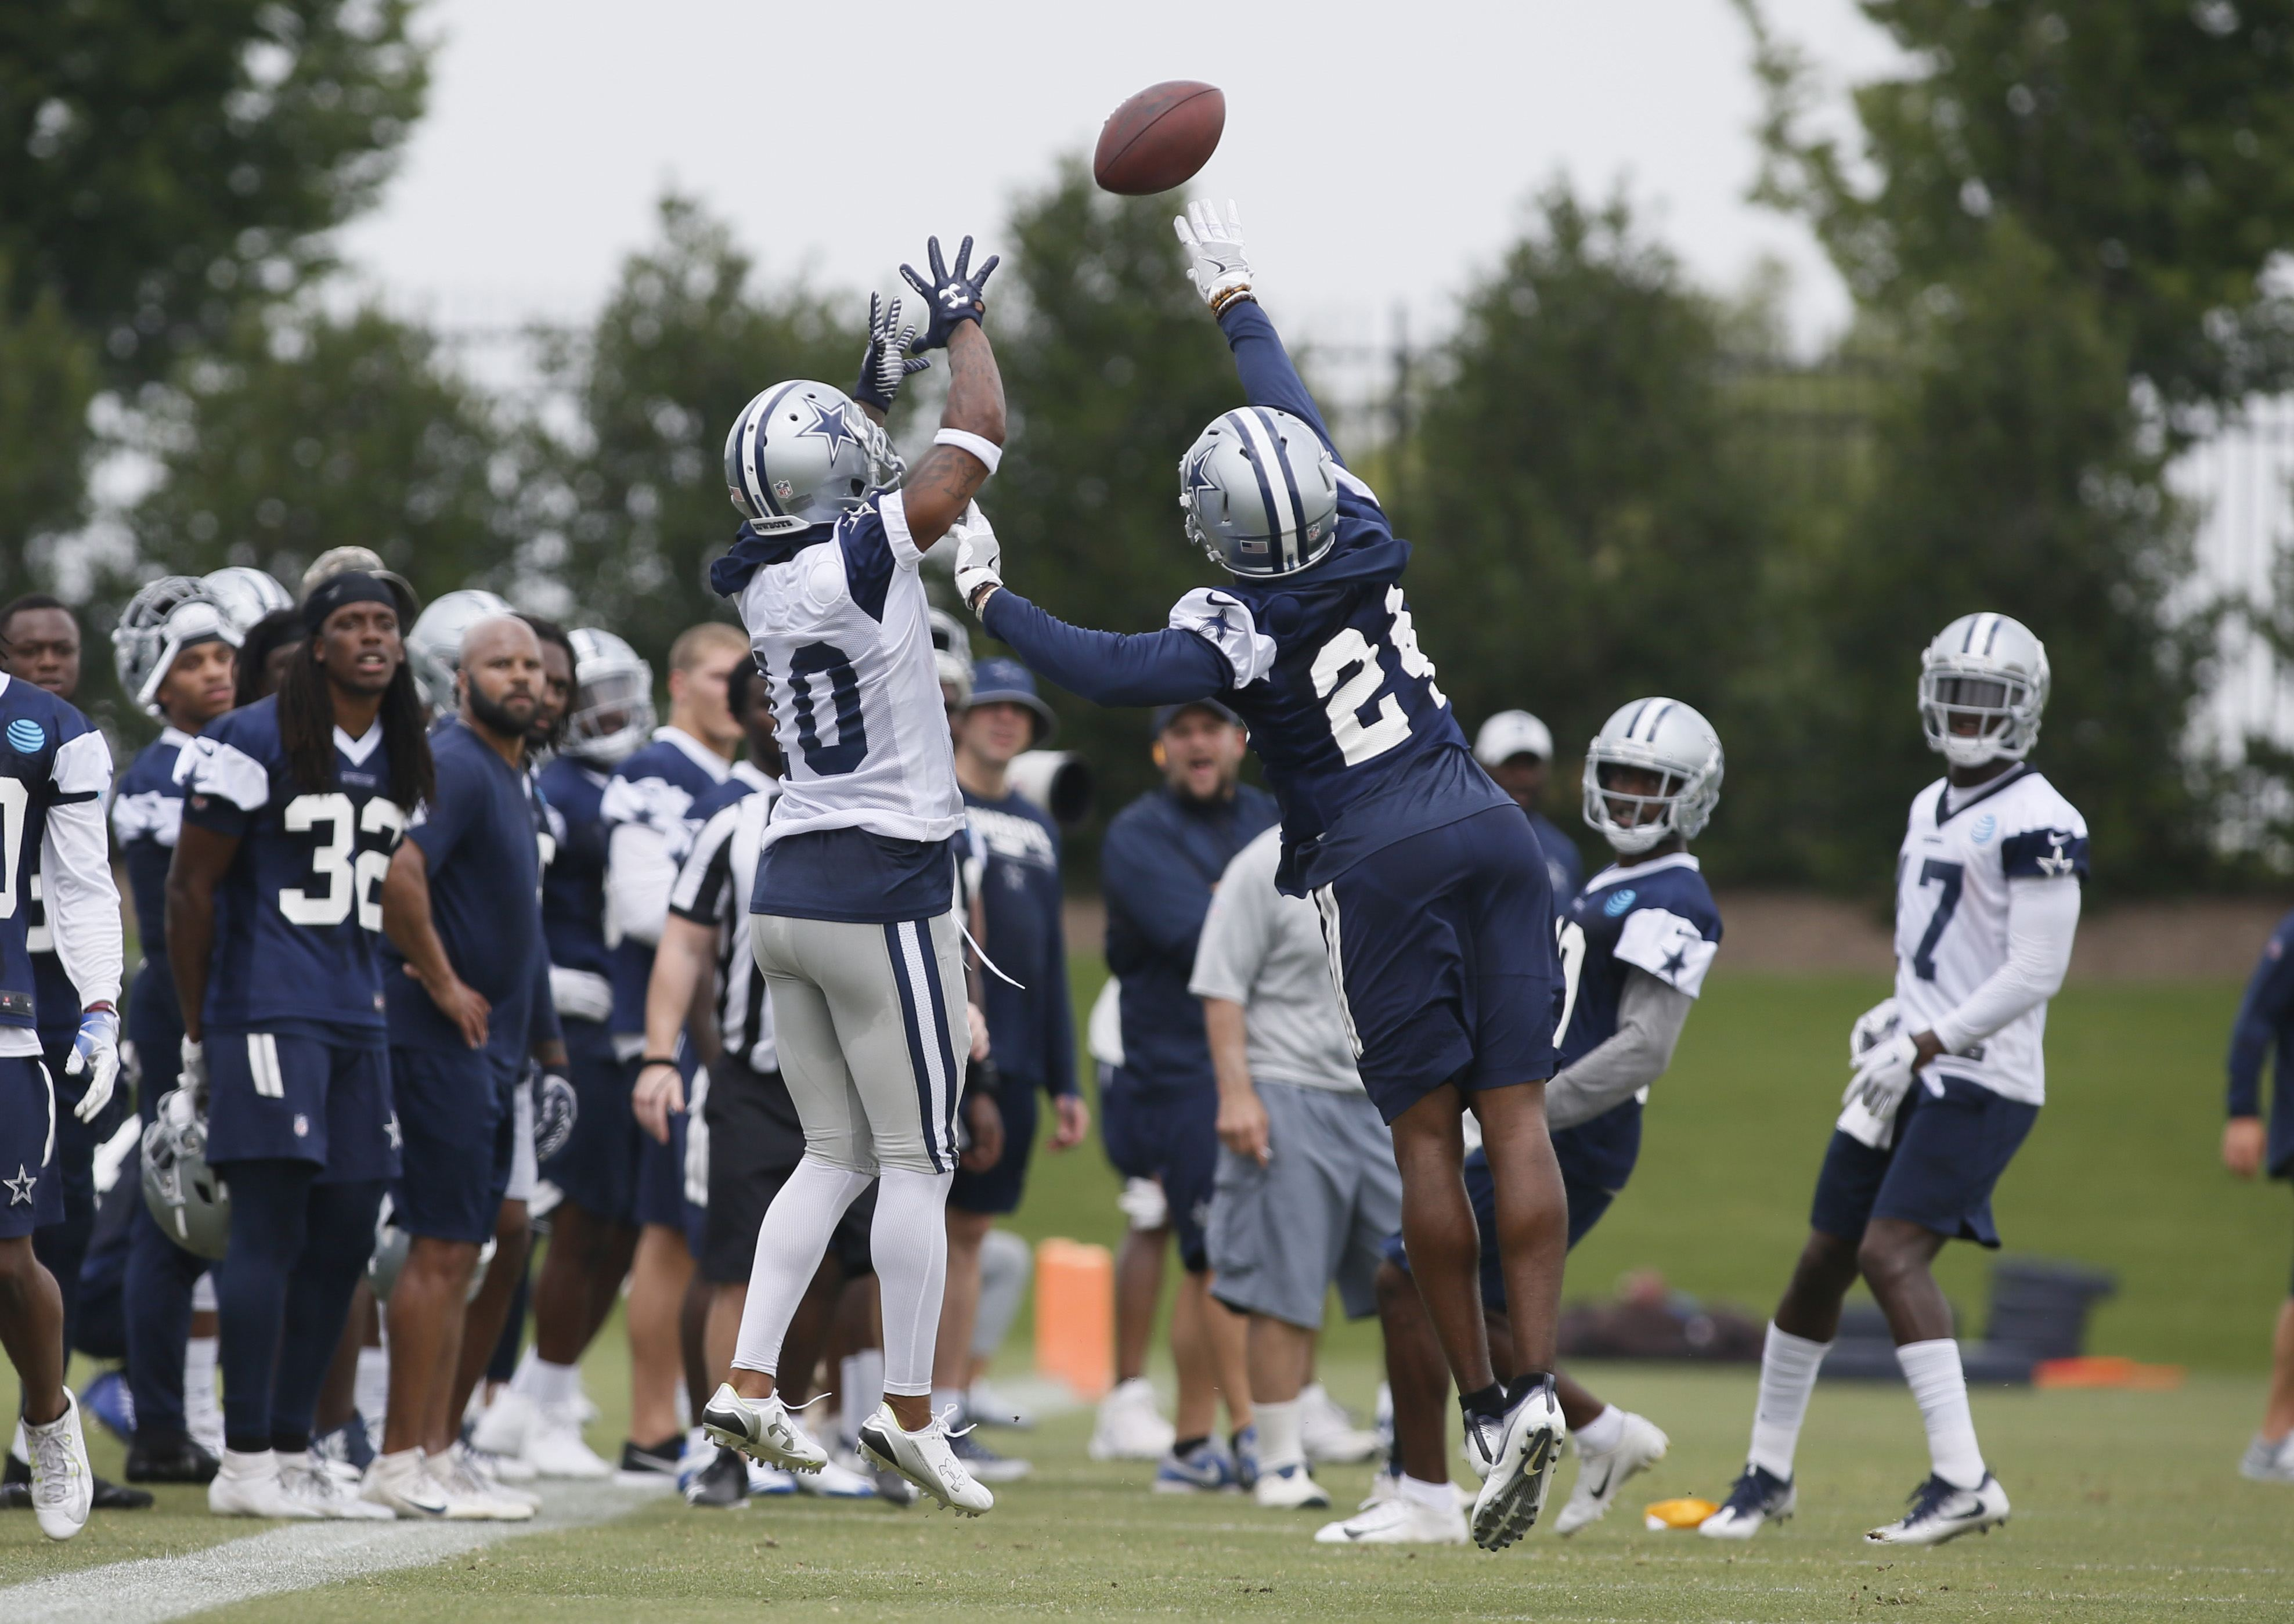 Sean-martin_dallas-cowboys_understanding-cowboys-formations-on-offense-from-week-1-of-training-camp